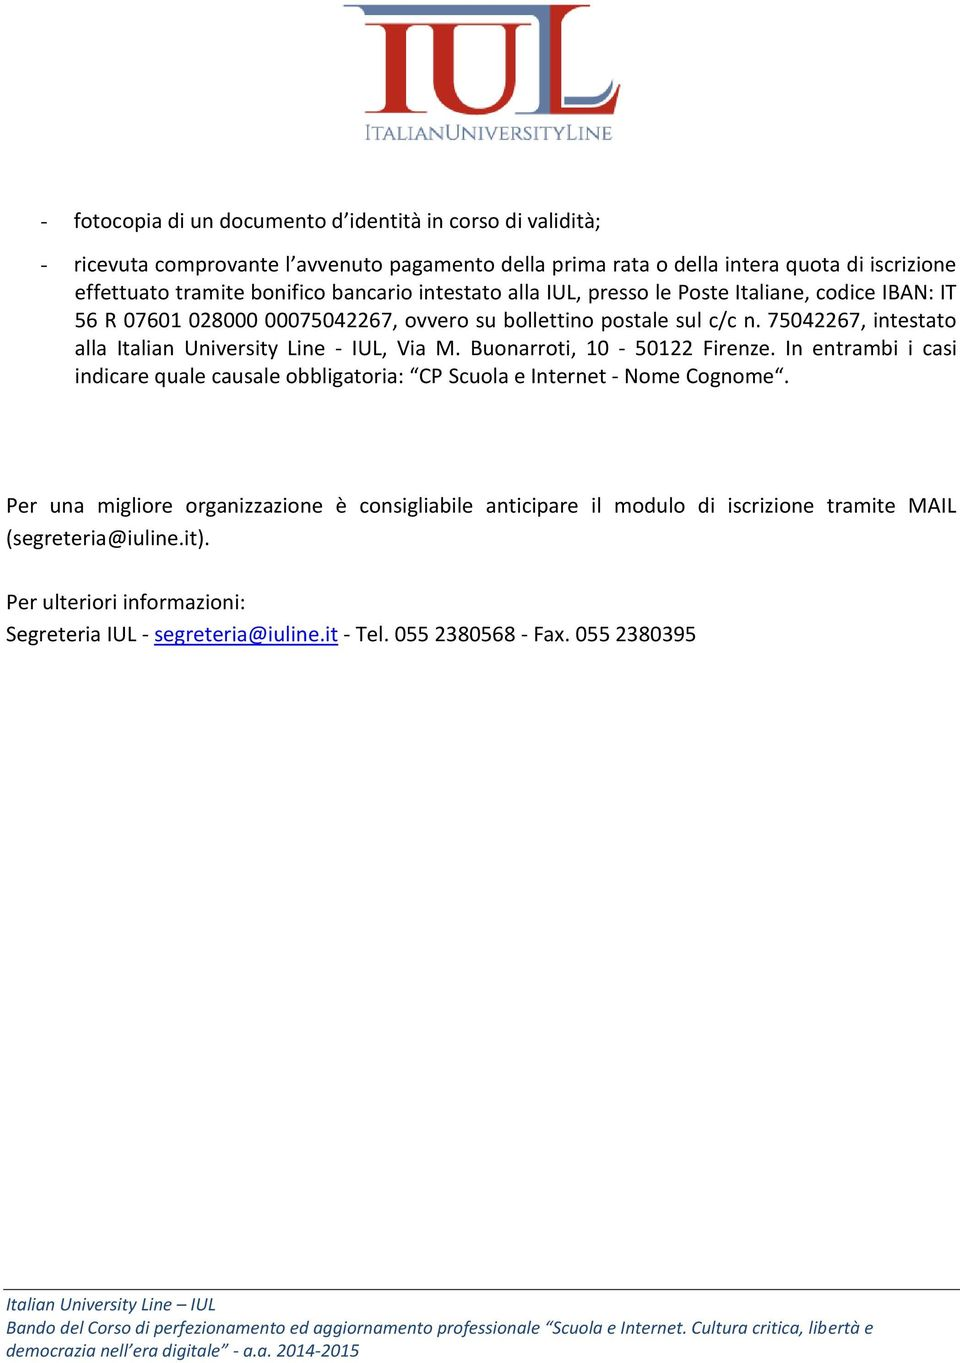 75042267, intestato alla Italian University Line - IUL, Via M. Buonarroti, 10-50122 Firenze.